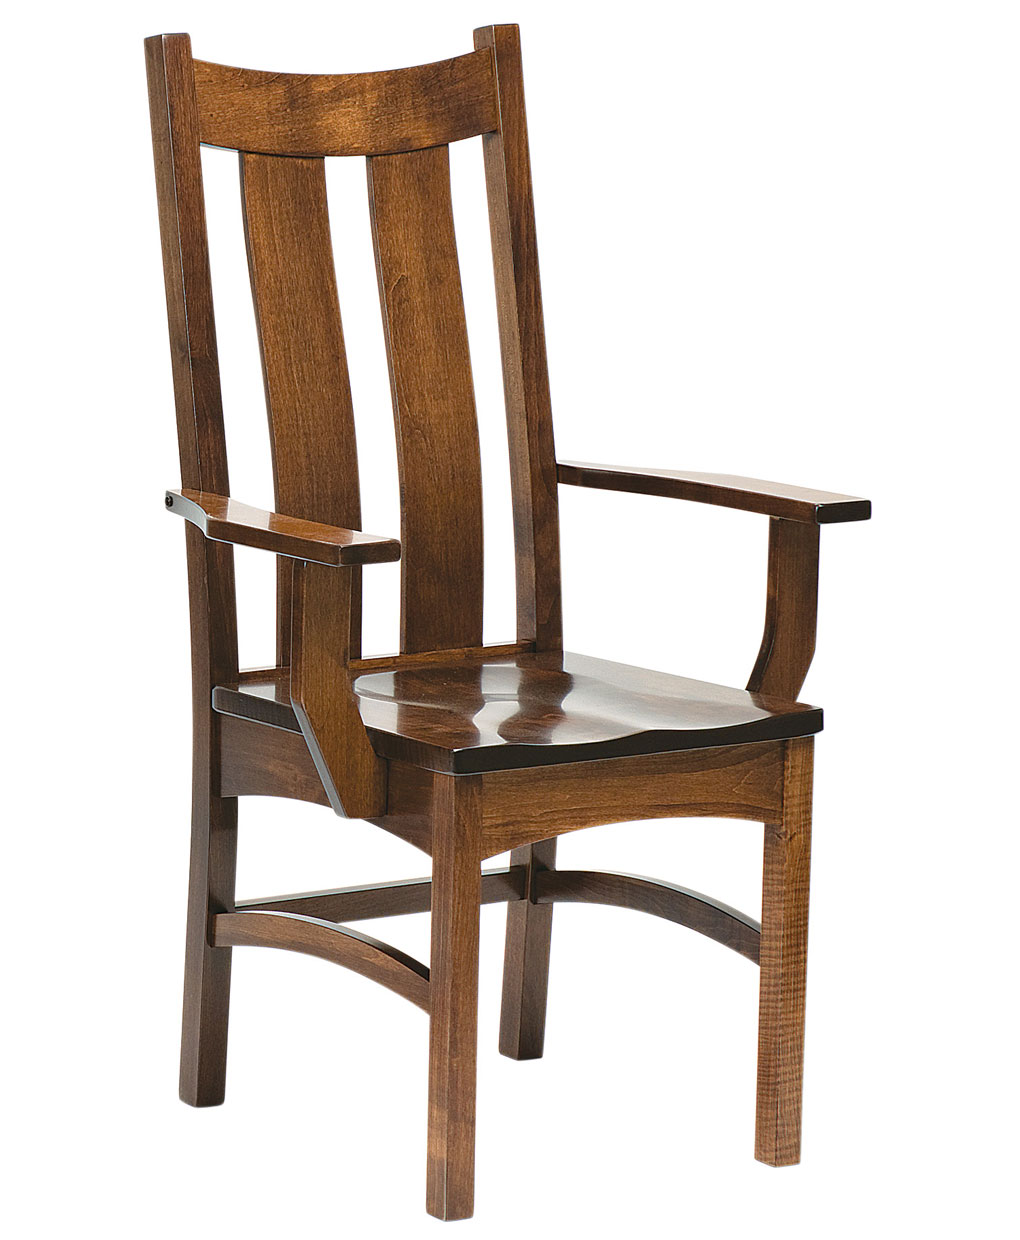 Country Shaker Dining Chair - Amish Direct Furniture